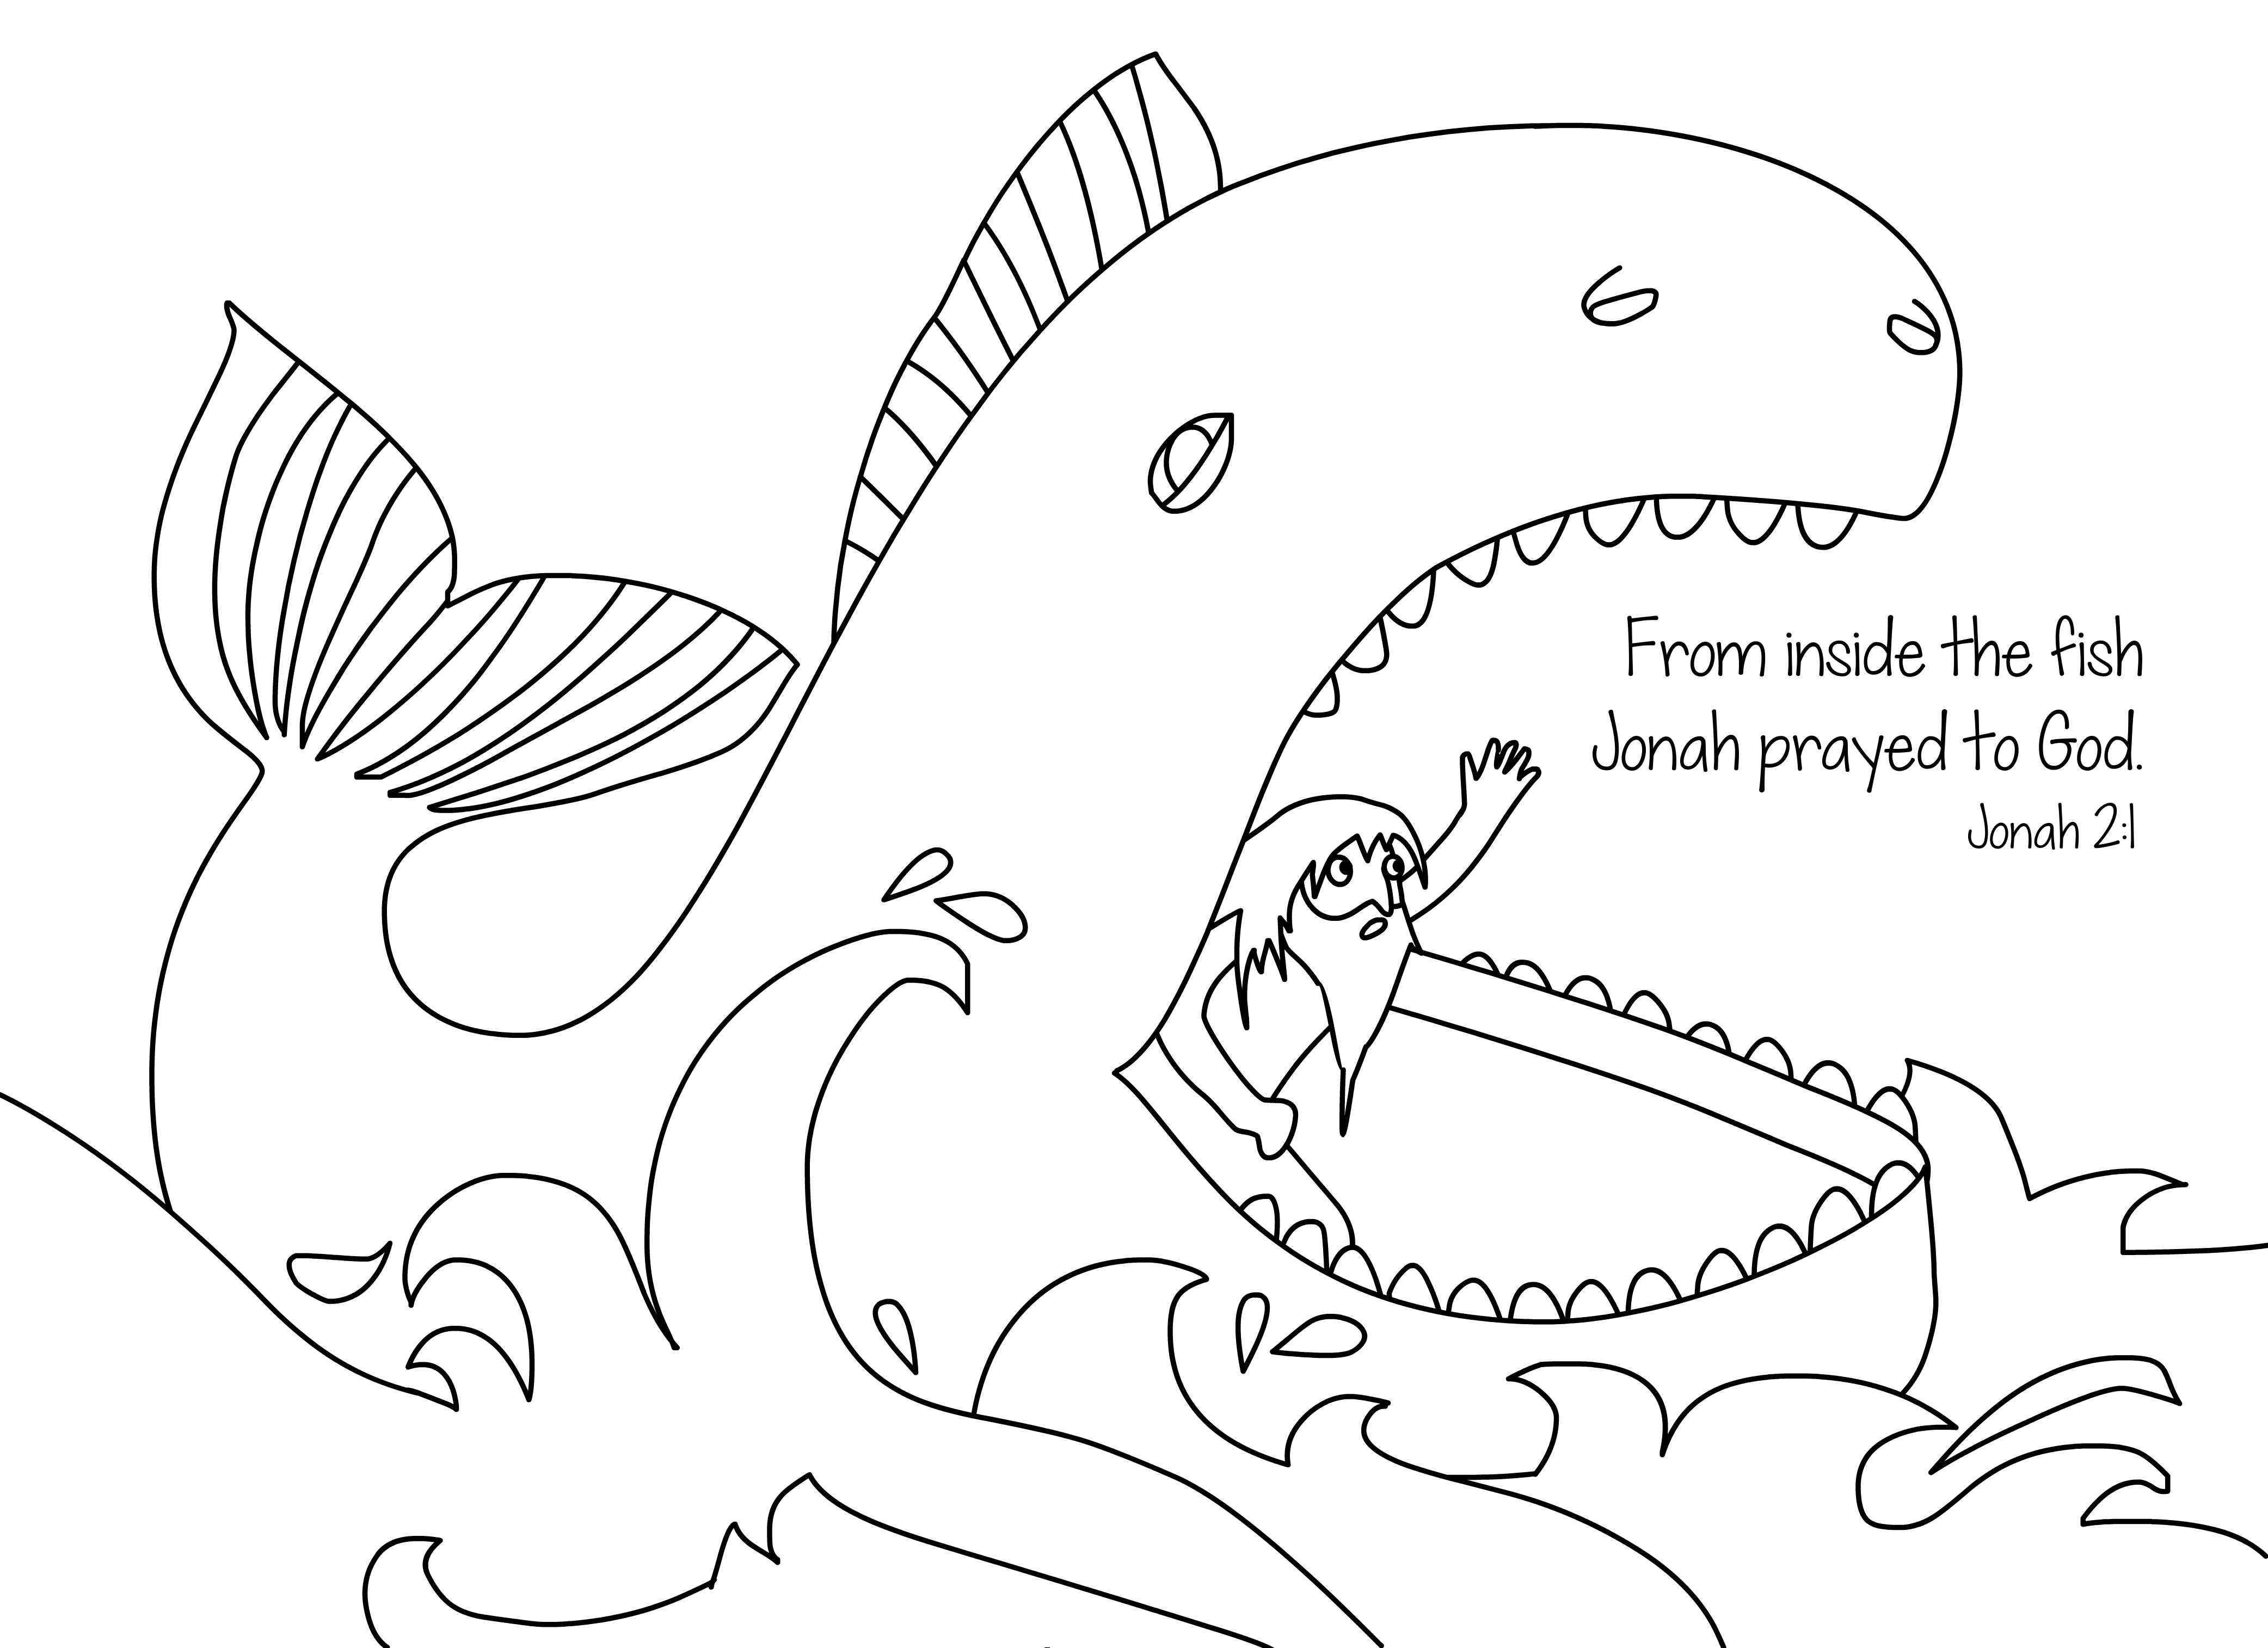 jonah and the whale coloring page jonah coloring pages free printable coloring pages for kids coloring and page the whale jonah